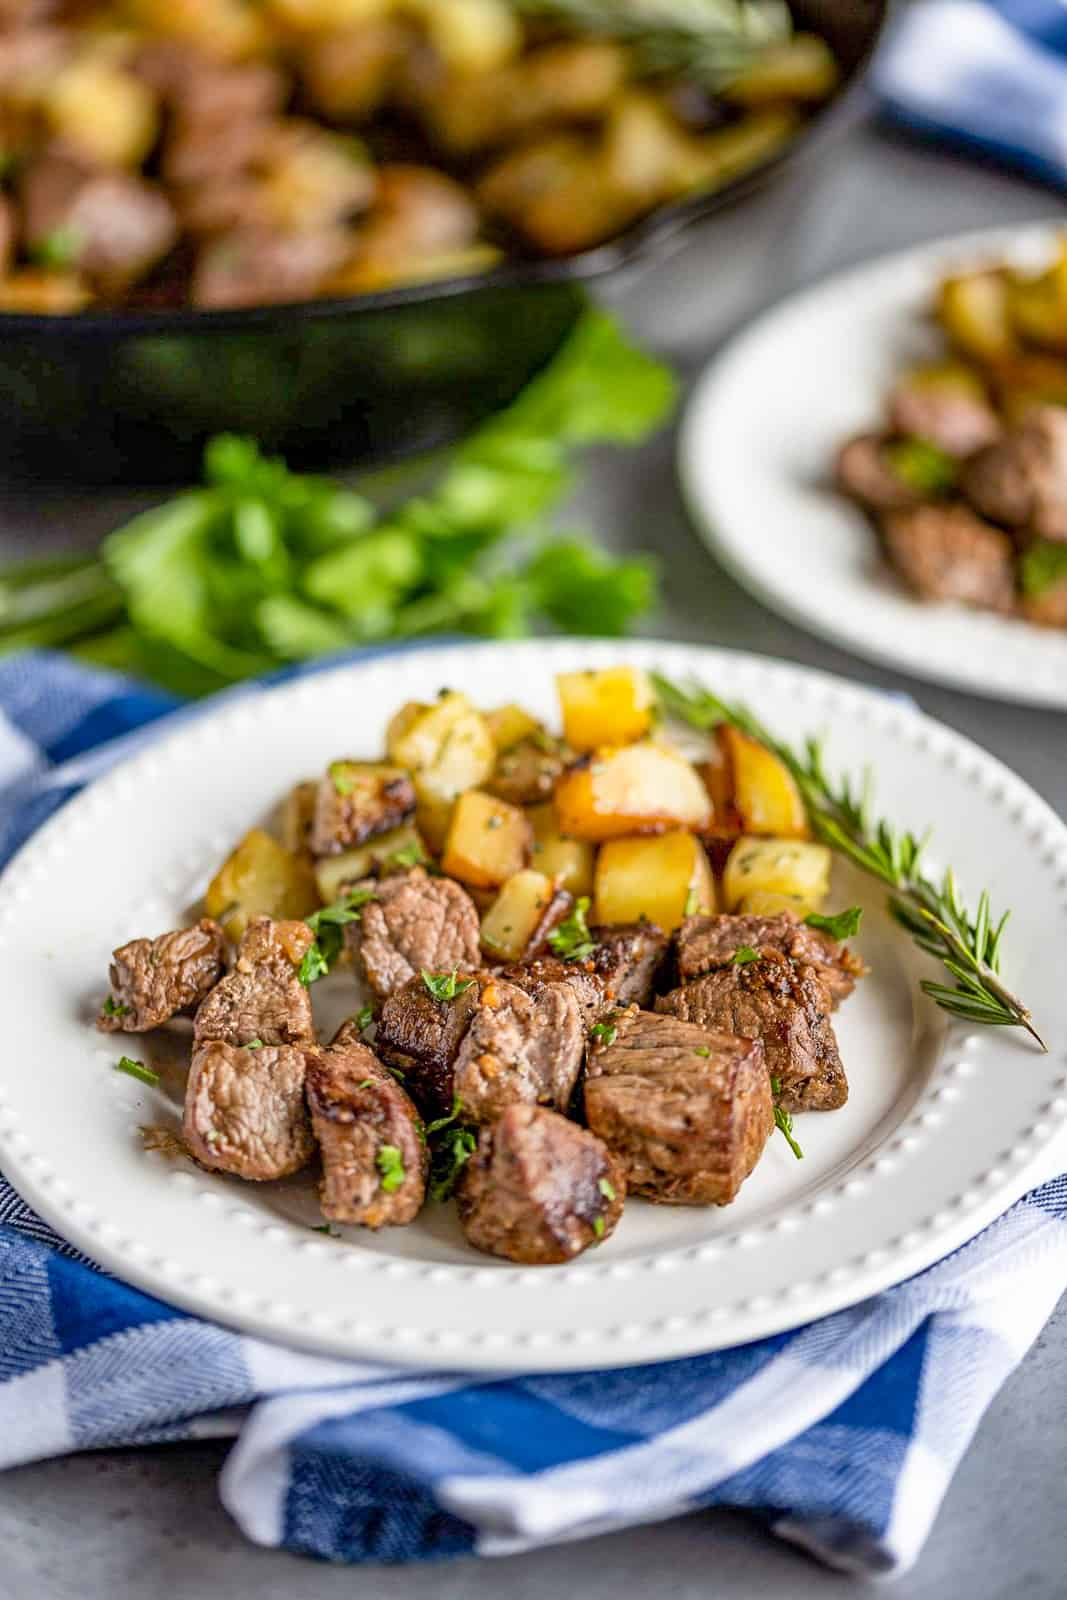 White plate with Steak Bites and Potatoes